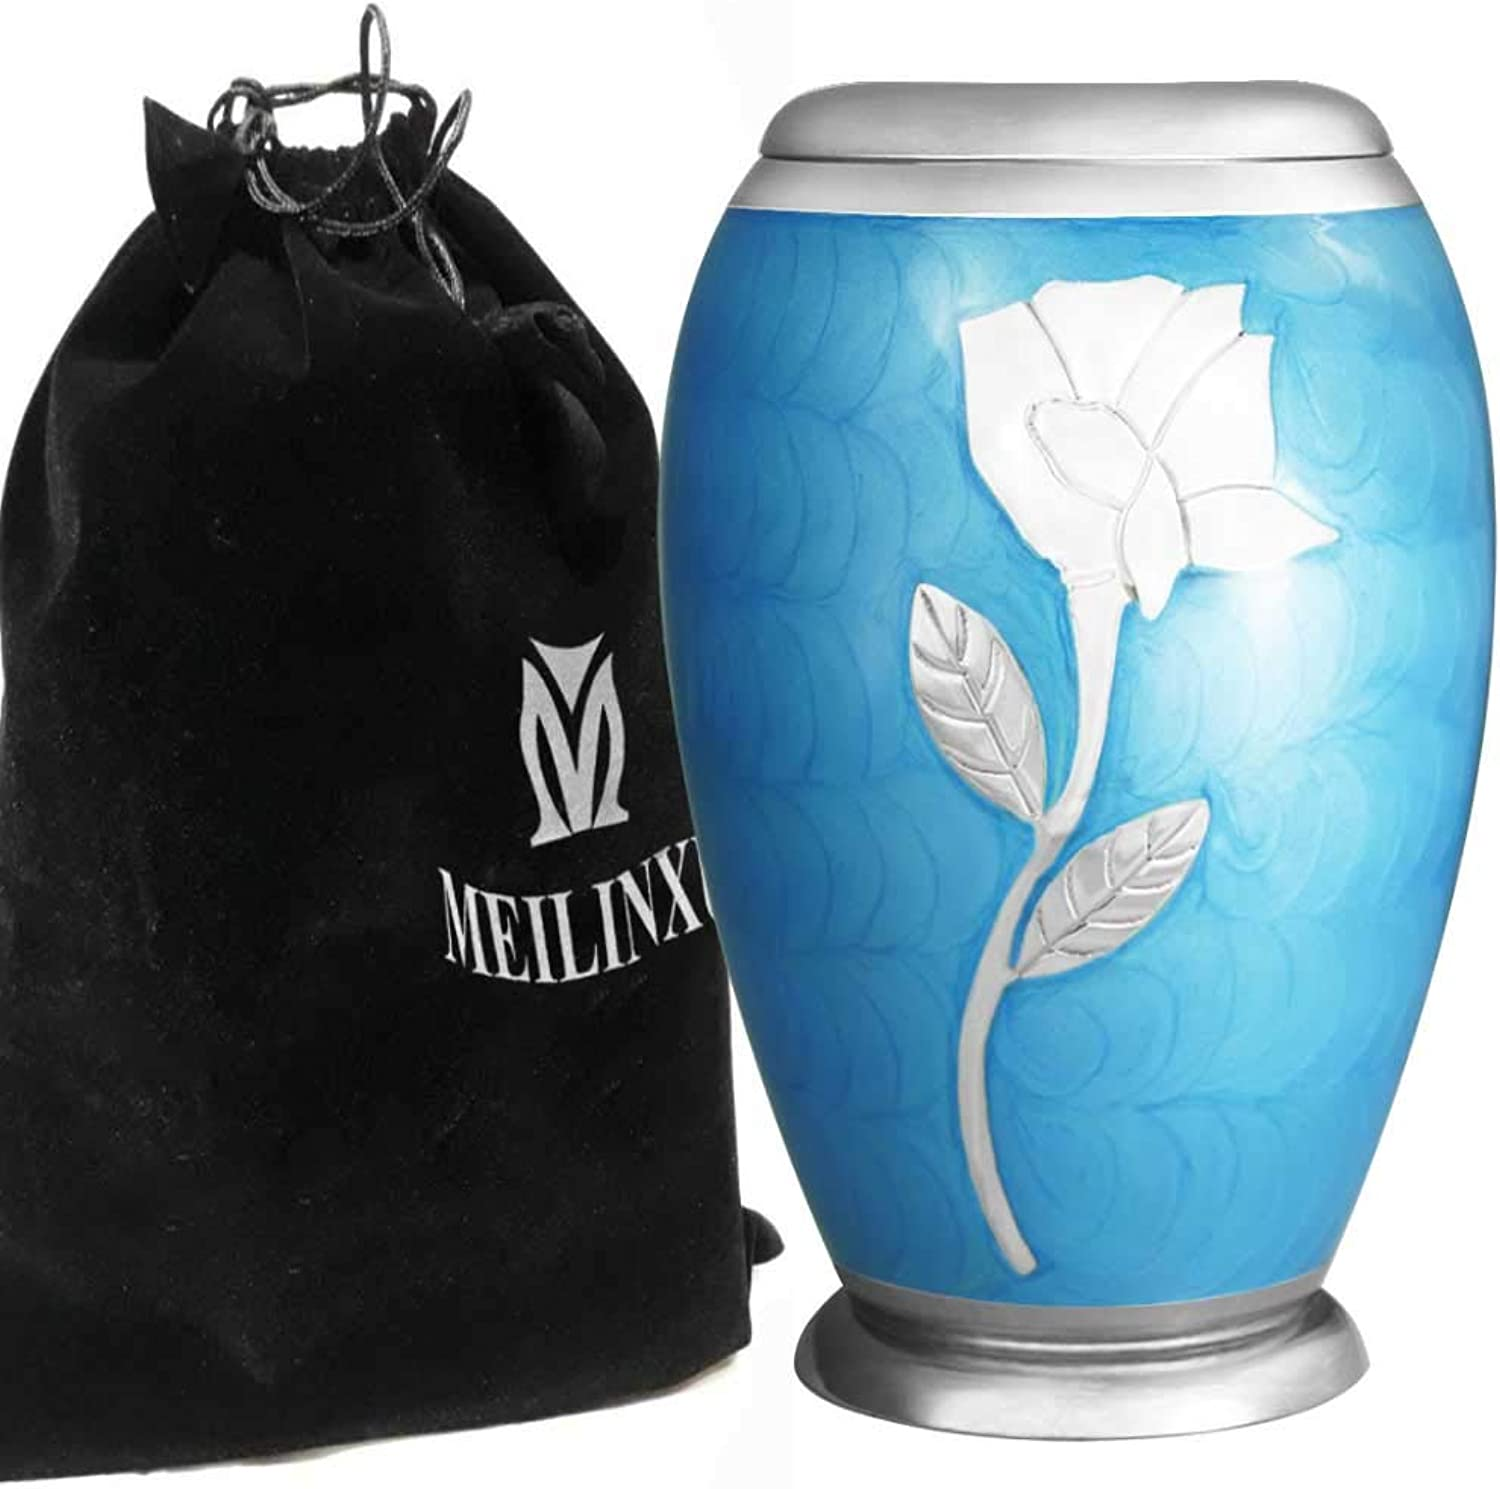 MEILINXU - Funeral Urns for Adults Ashes, Cremation Urn for Human Ashes - Memorials Urns for Ashes - Display Burial Urn at Home or in Niche at Columbarium (Ascot bluee with Silvery pink, Large Urn